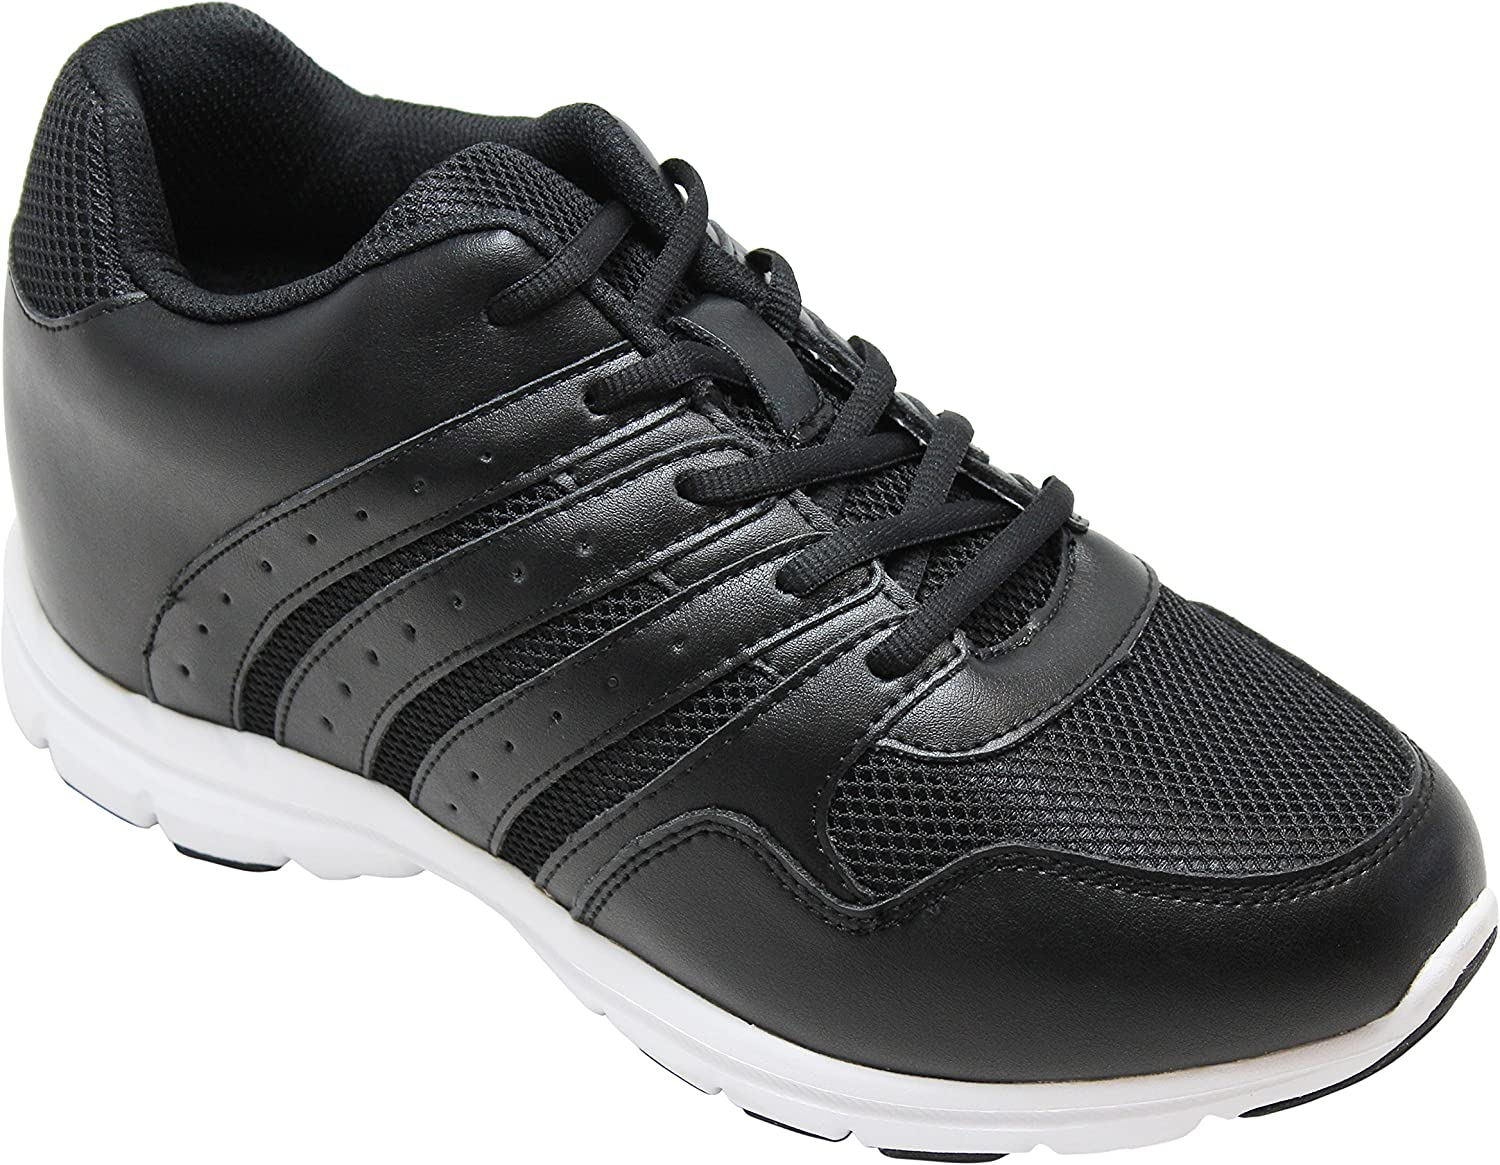 CALTO Men's Invisible Height Increasing Elevator shoes - Black Leather Mesh Lace-up Lightweight Sporty Trainer Sneakers - 3.2 Inches Taller - G8817-3.2 Inches Taller